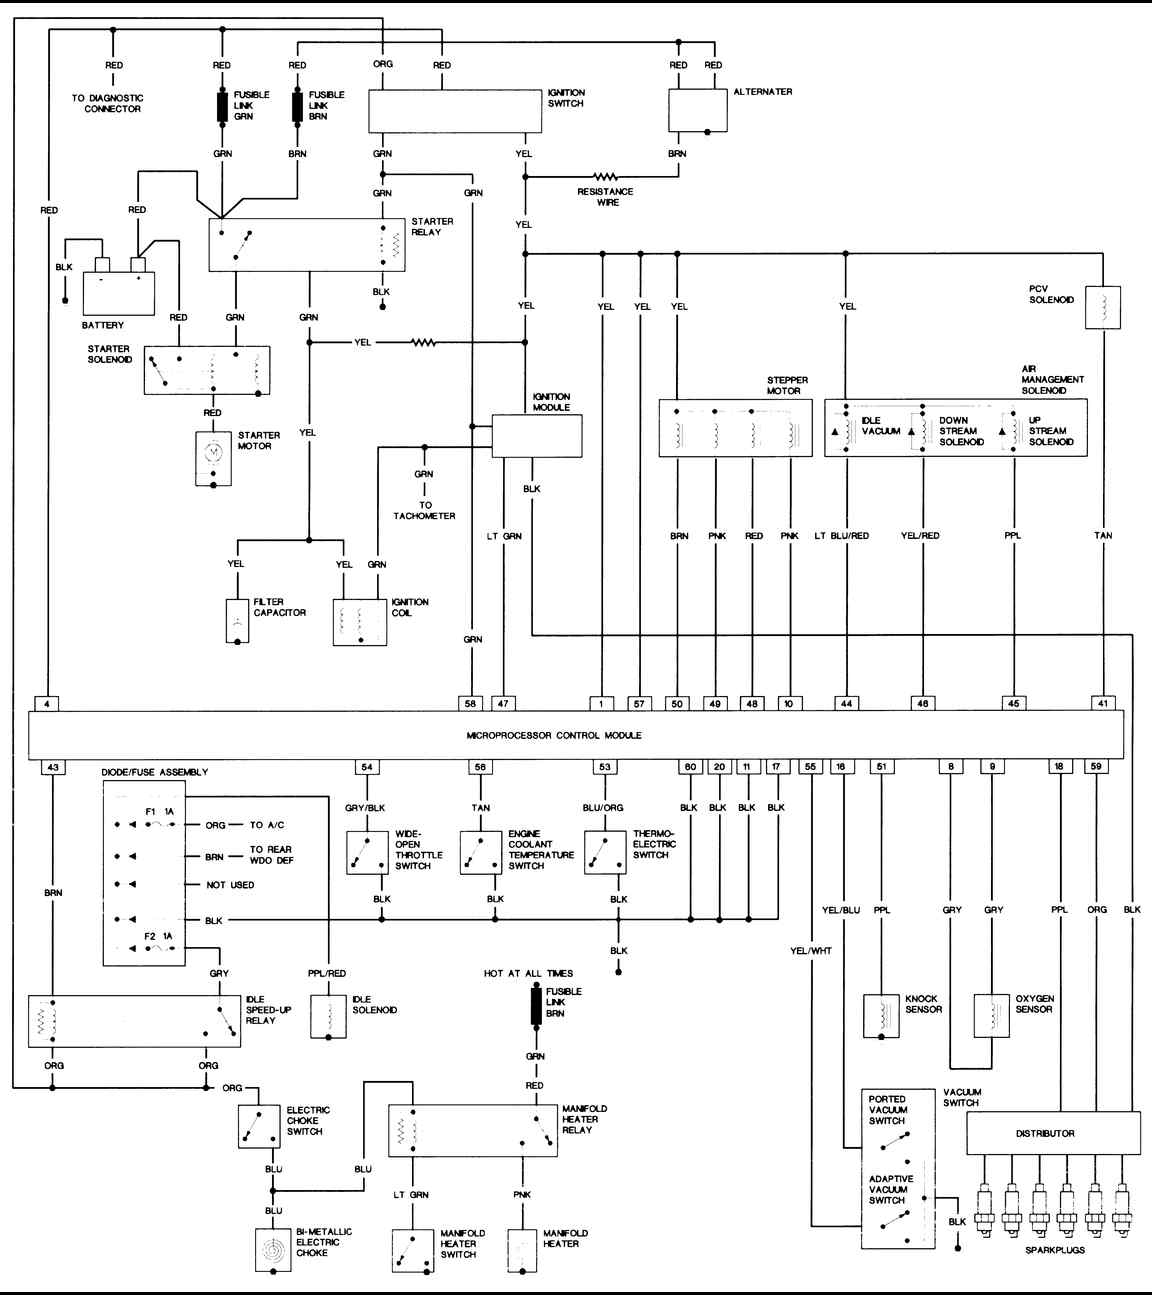 Jeep 4 2 Wiring Diagram Real Liberty Harness 1988 Wrangler 2l Engine Large Freeautomechanic